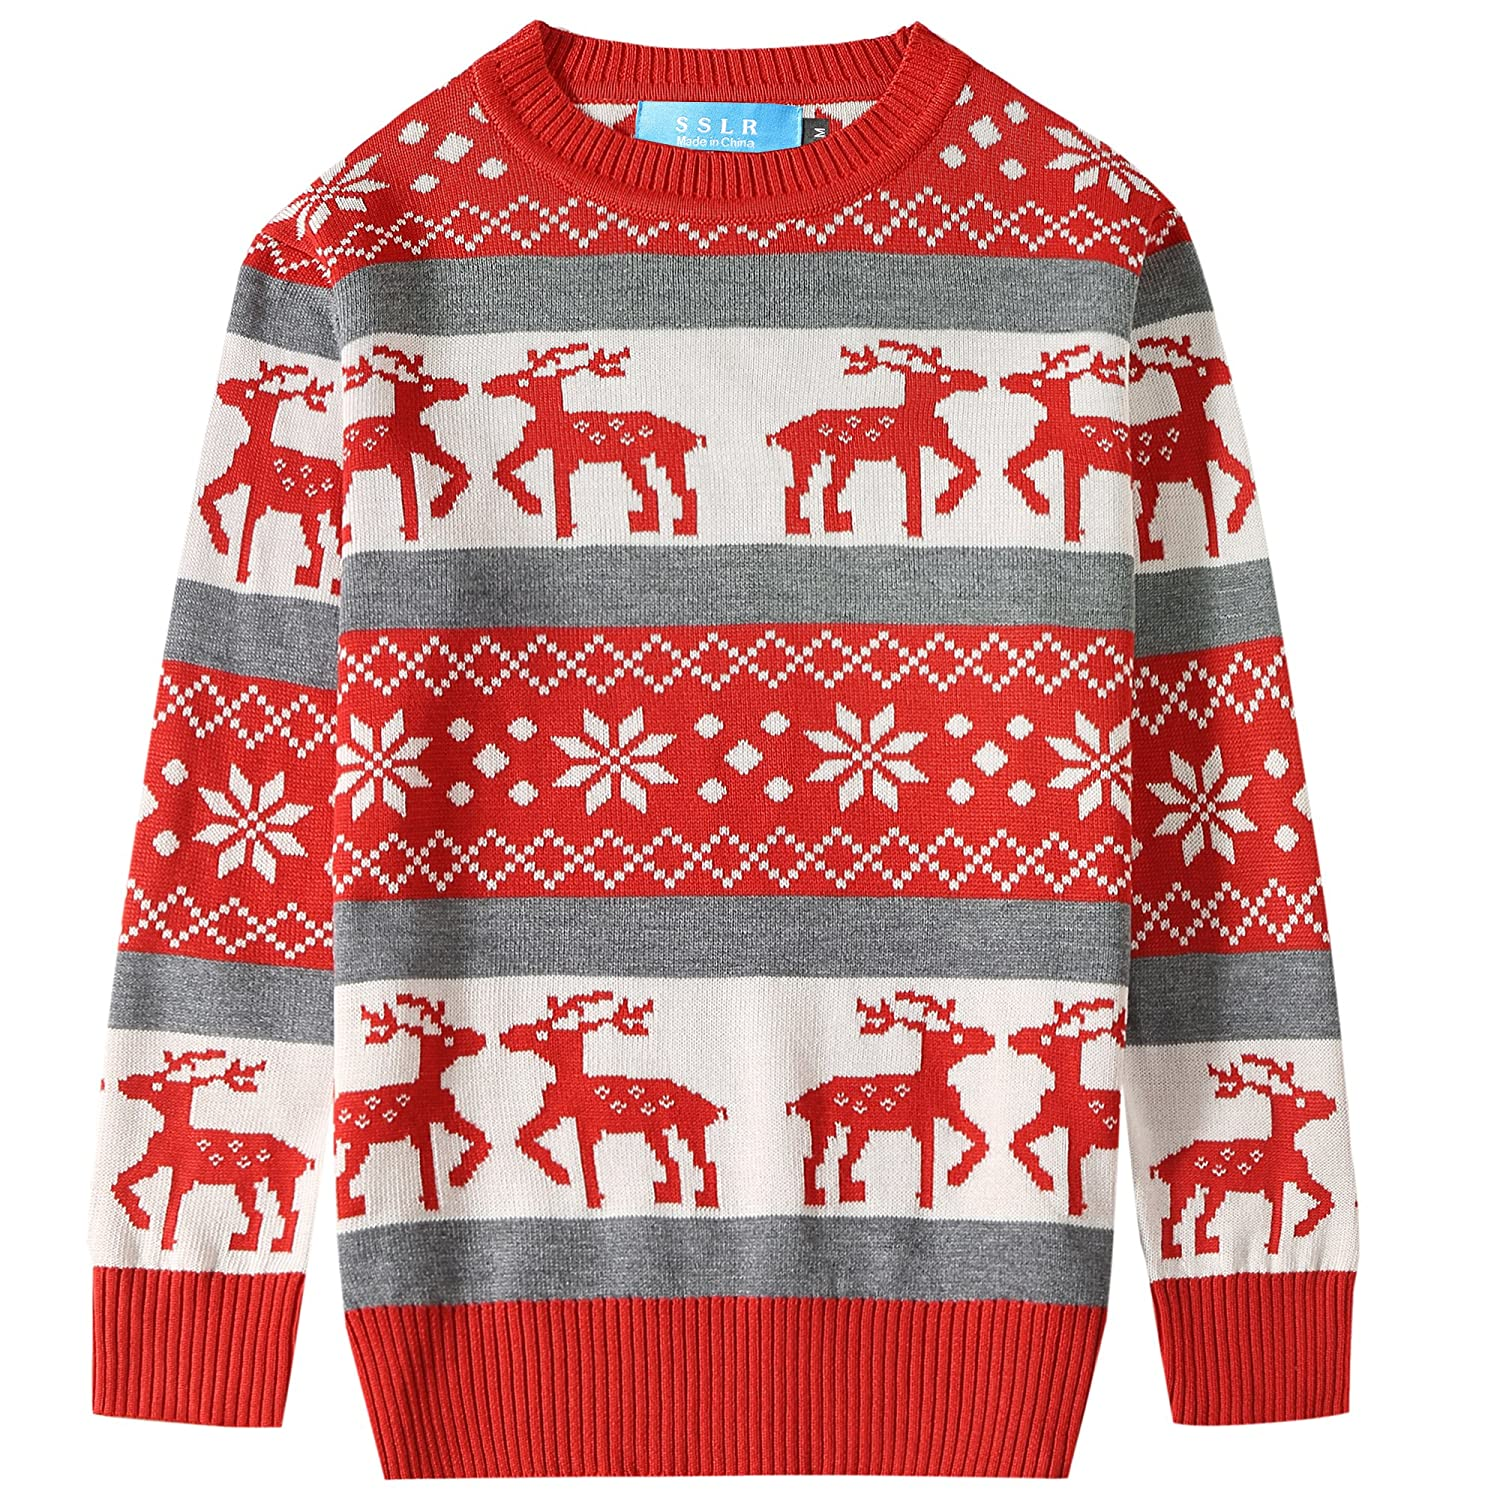 SSLR Big Boys' Reindeer Pullover Crewneck Ugly Christmas Sweater SN-T18-B-40013